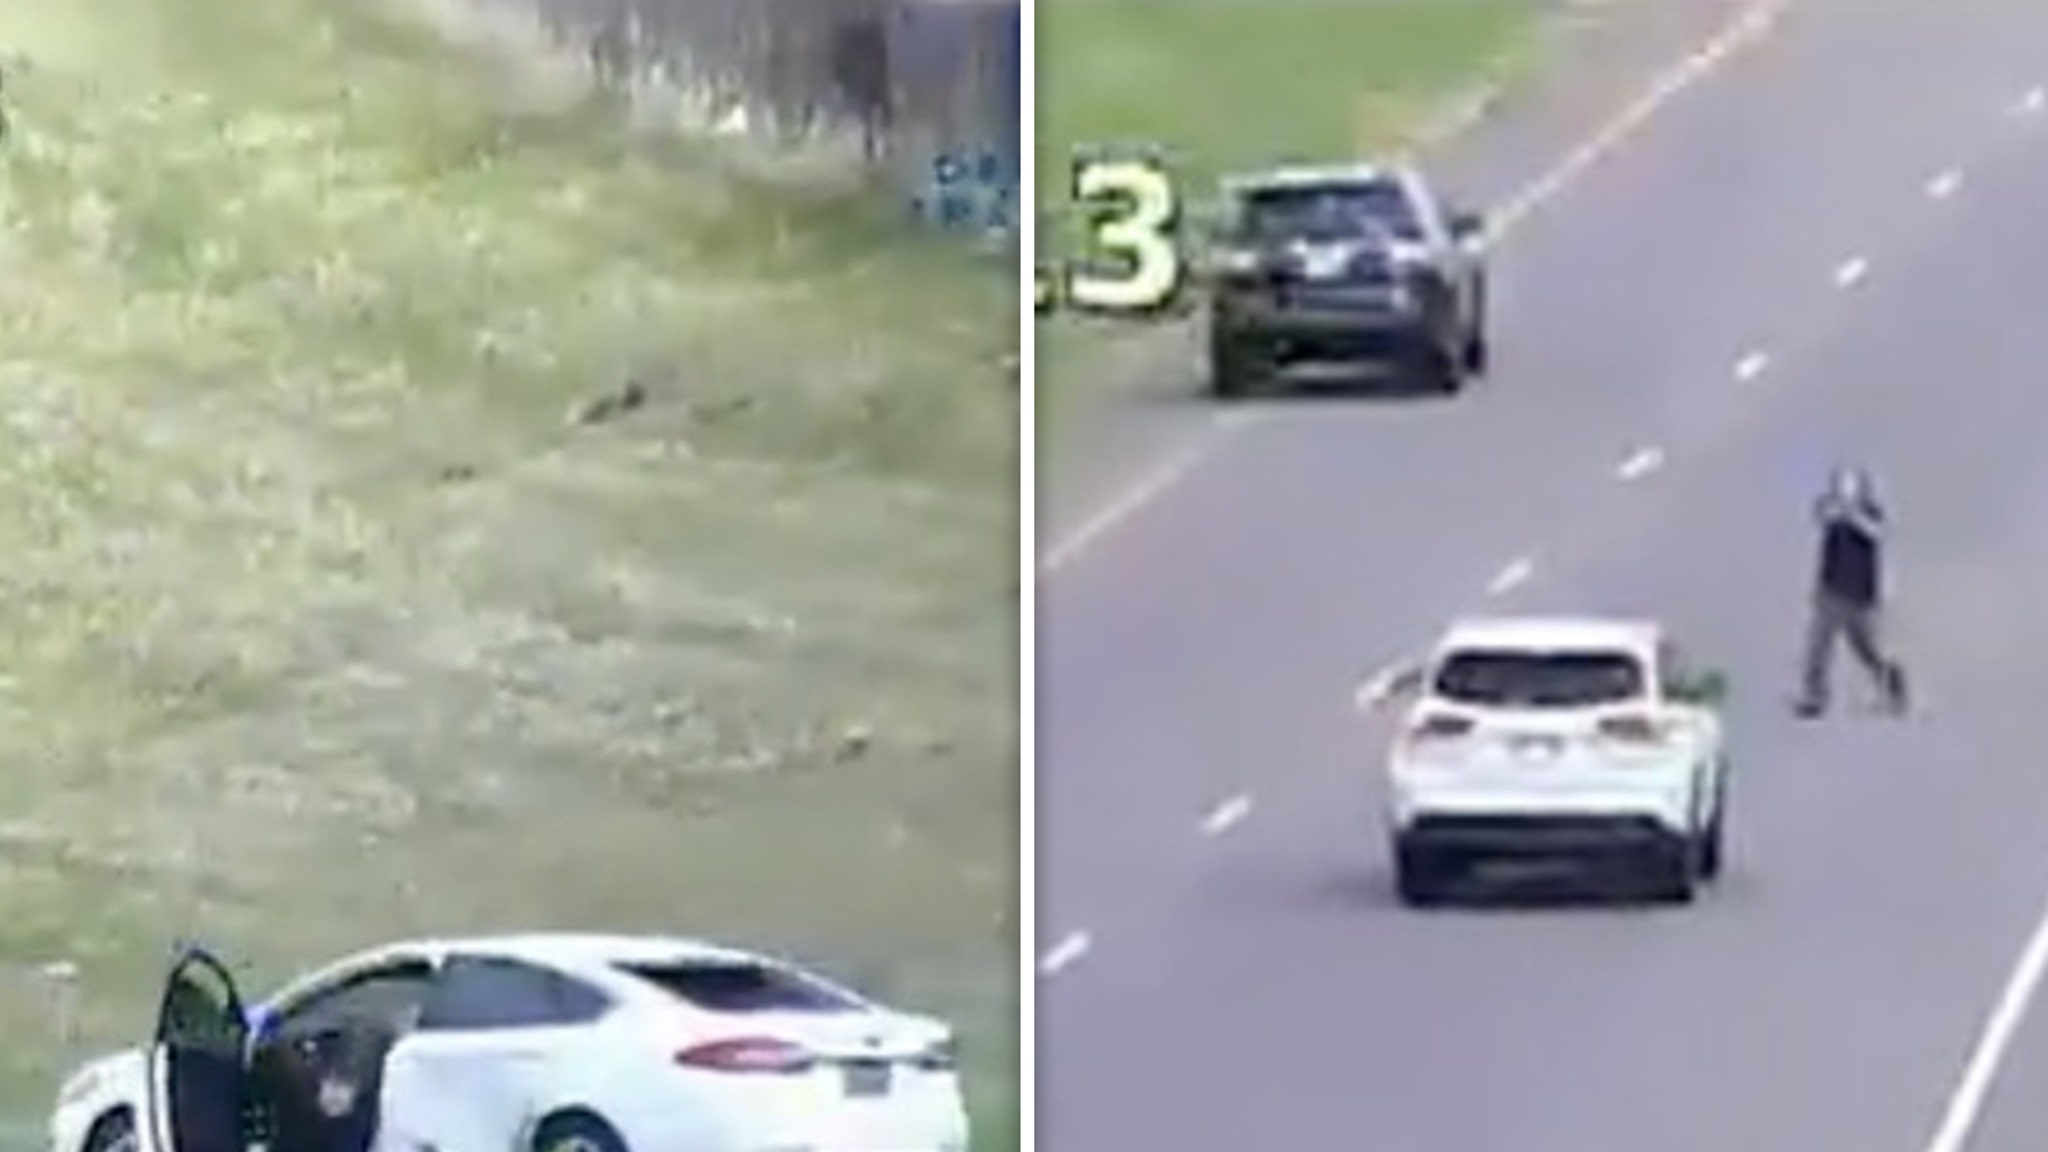 Officer-Involved Shooting in MN Not What It Seems, Armed Carjacking thumbnail